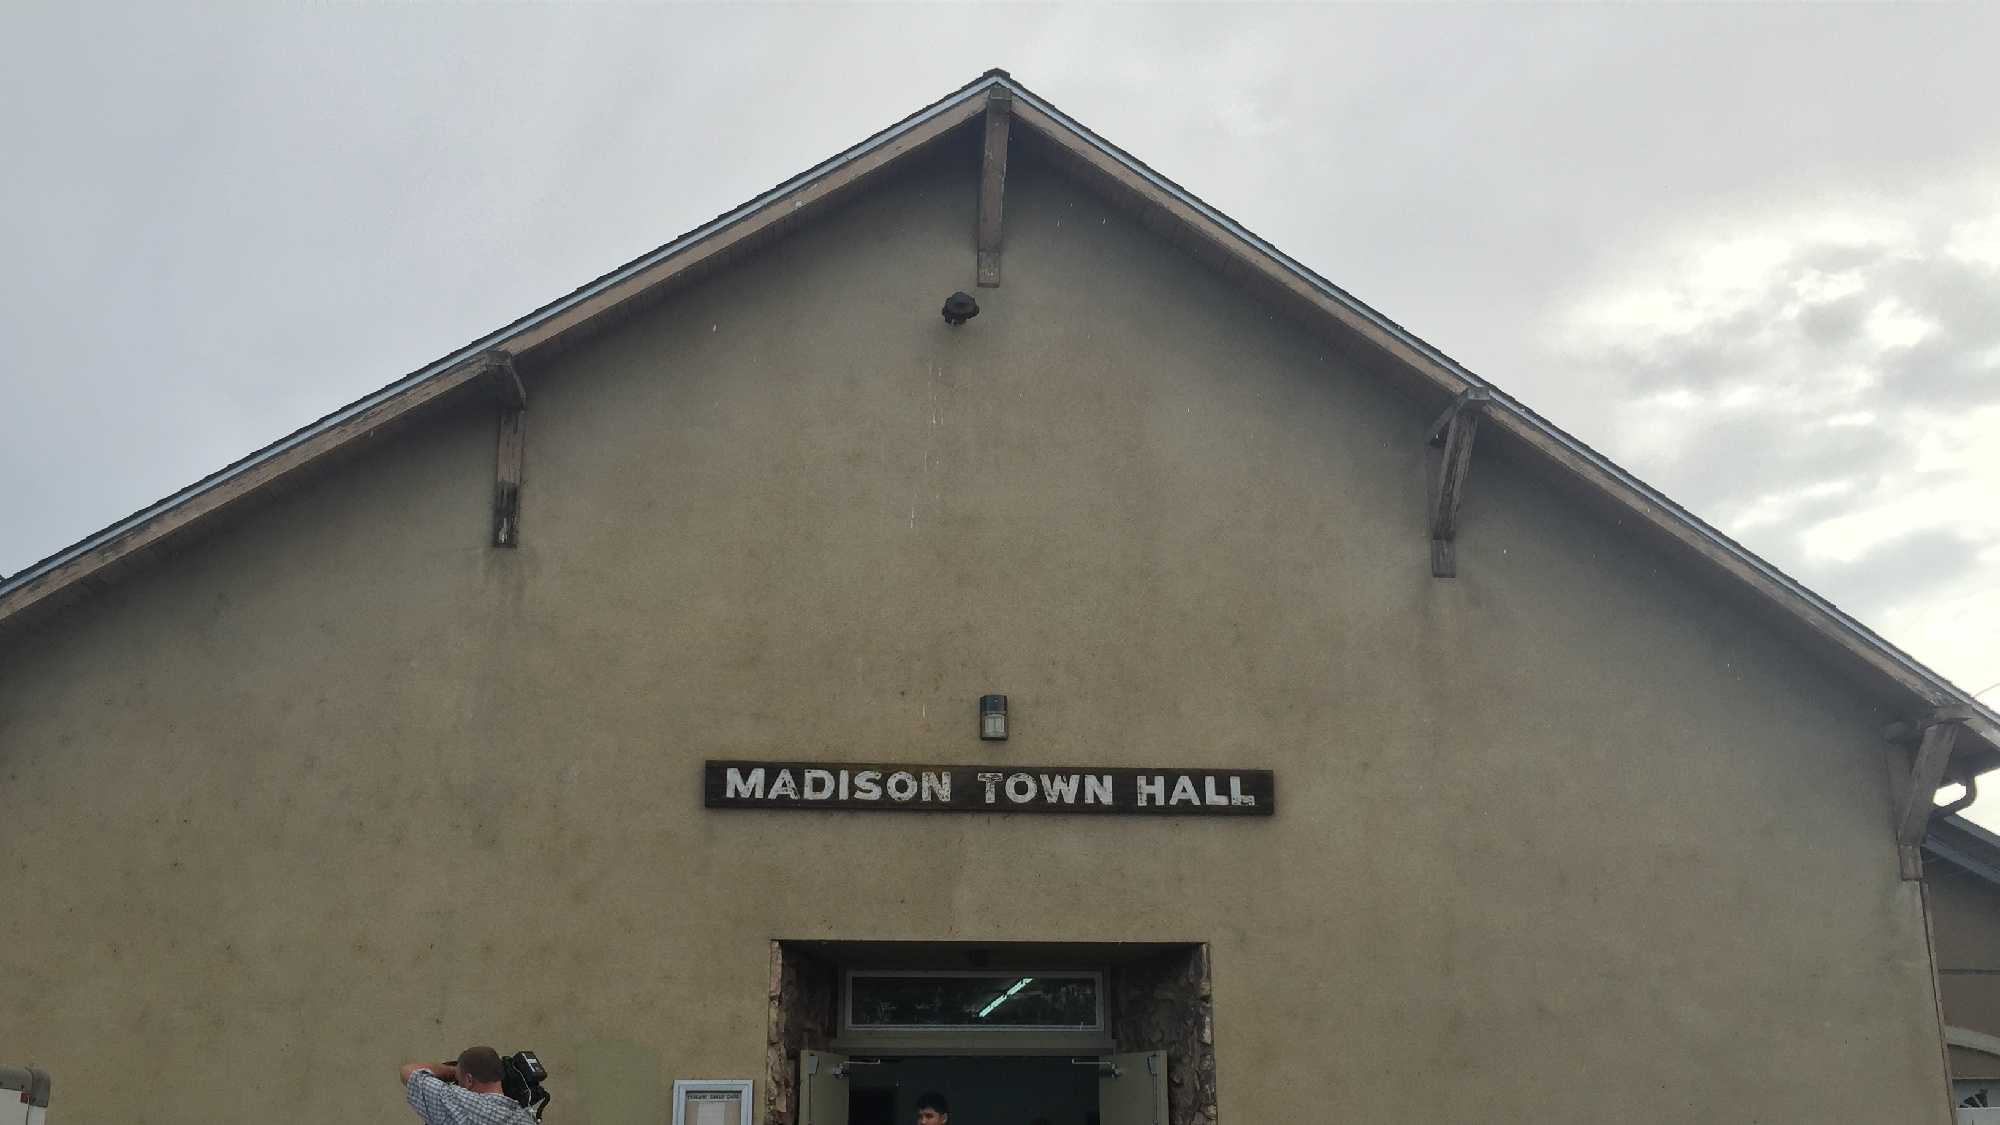 A girl's 15th birthday party at the Madison Town Hall ended early Saturday, Oct. 18, 2015, when a 18-year-old suspect stabbed six people at the party, the Yolo County Sheriff's Office said.